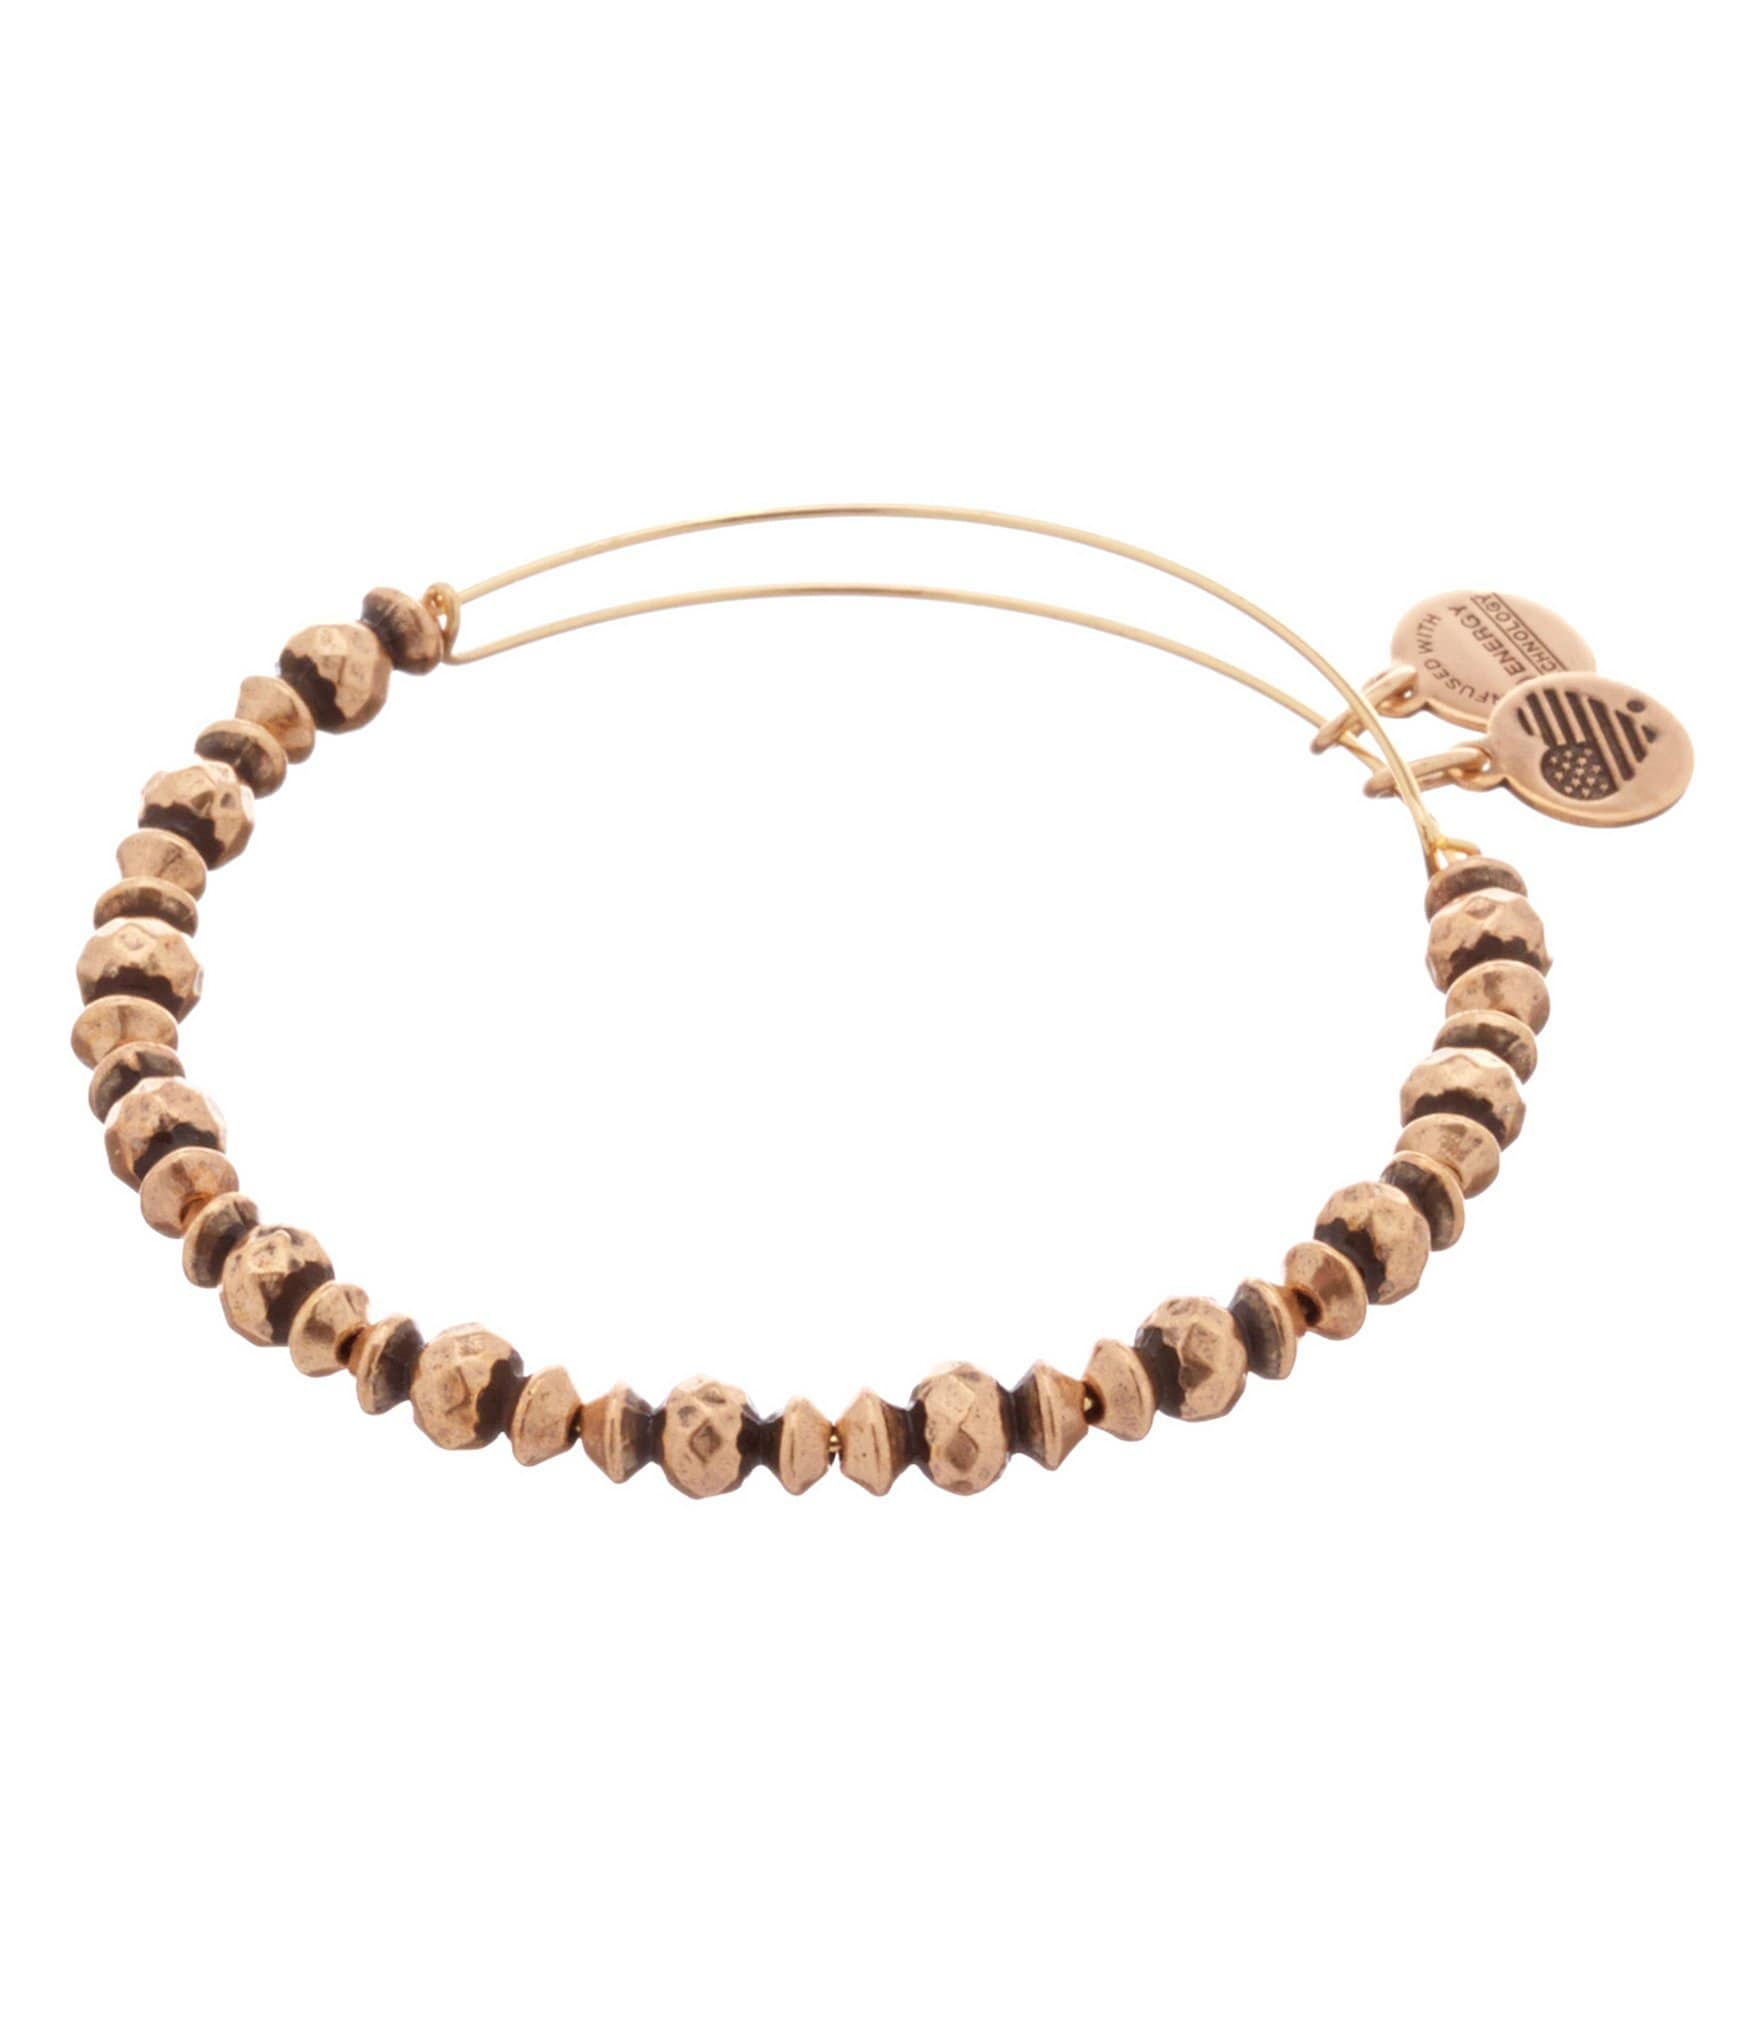 About Alex and Ani. Alex and Ani is a company specializing in beautiful, handcrafted gifts and jewelry pieces that are durable and high-quality enough to pass on from generation to generation.